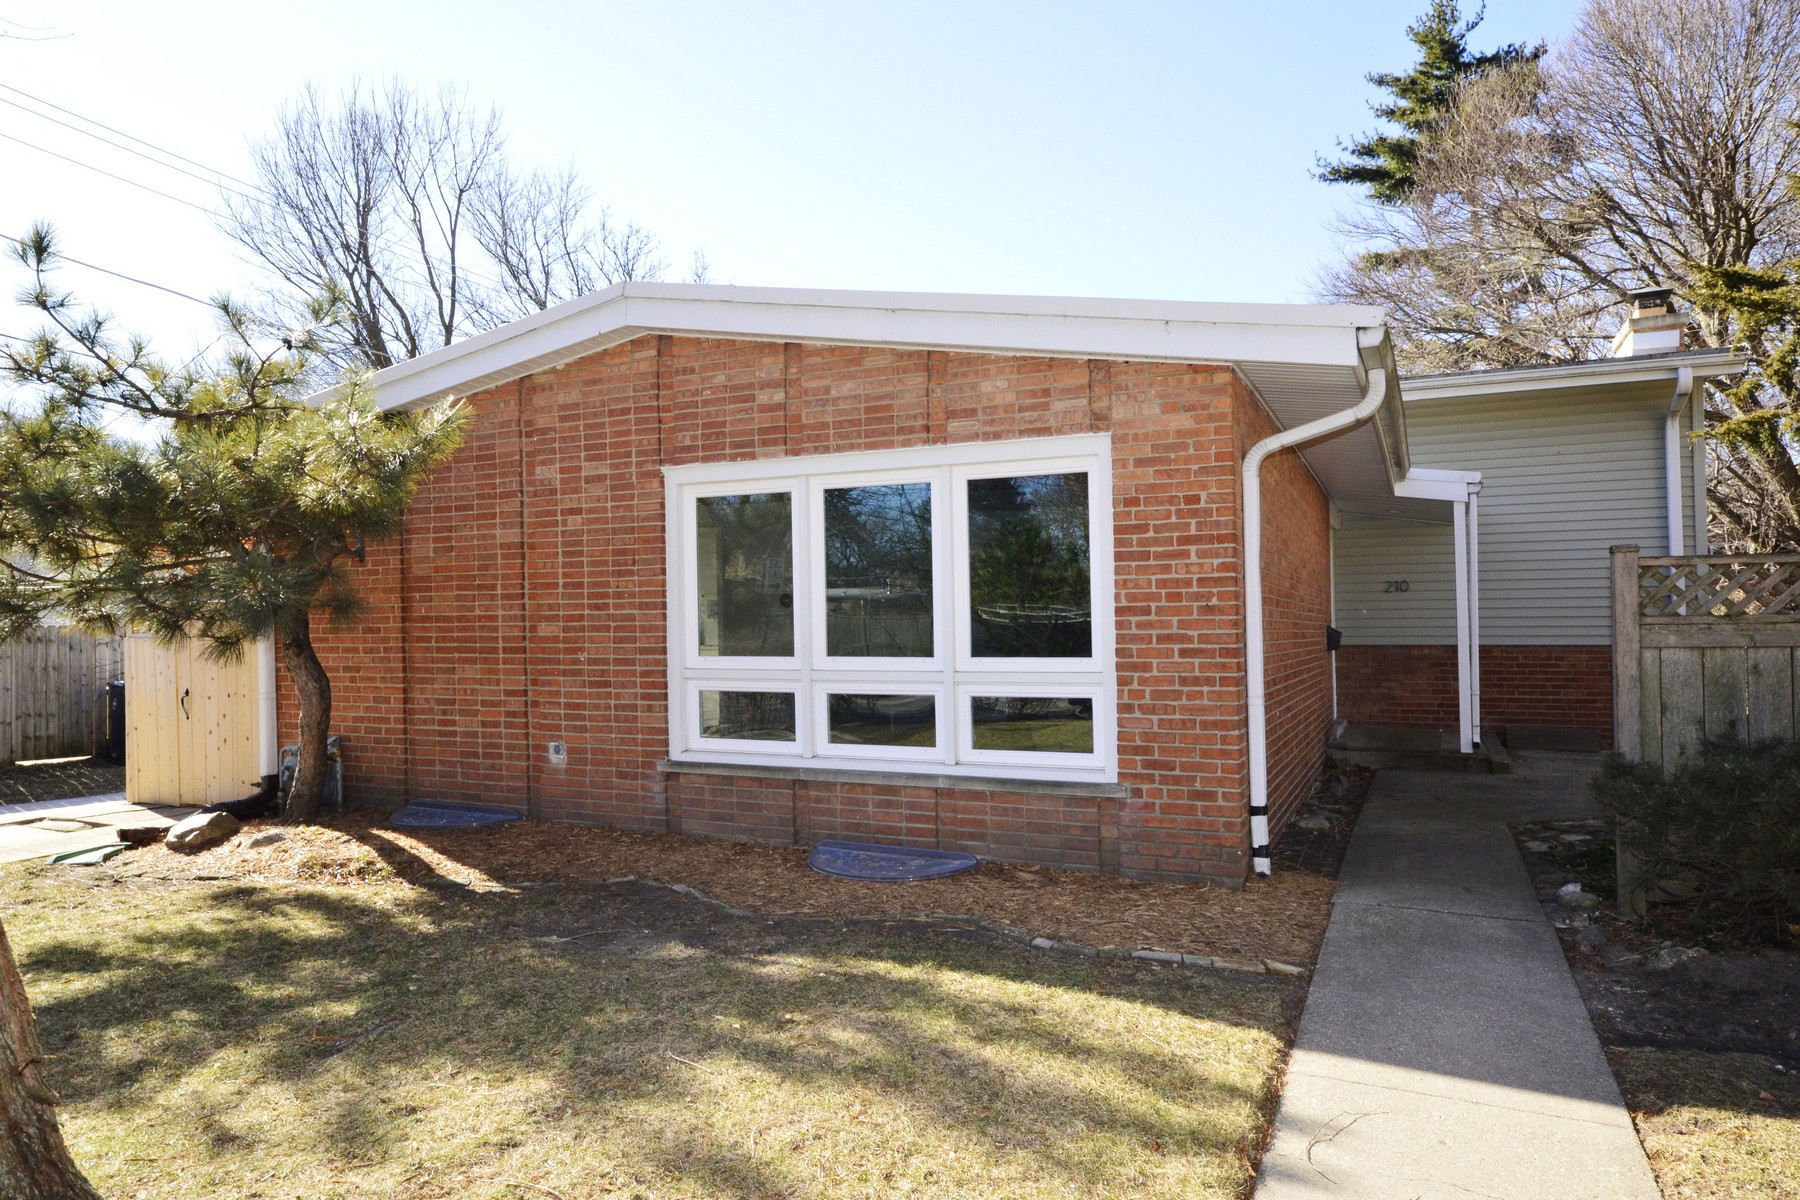 Single Family Home for Sale at Jumbo split level in South West Evanston 210 Dewey Avenue, Evanston, Illinois, 60202 United States